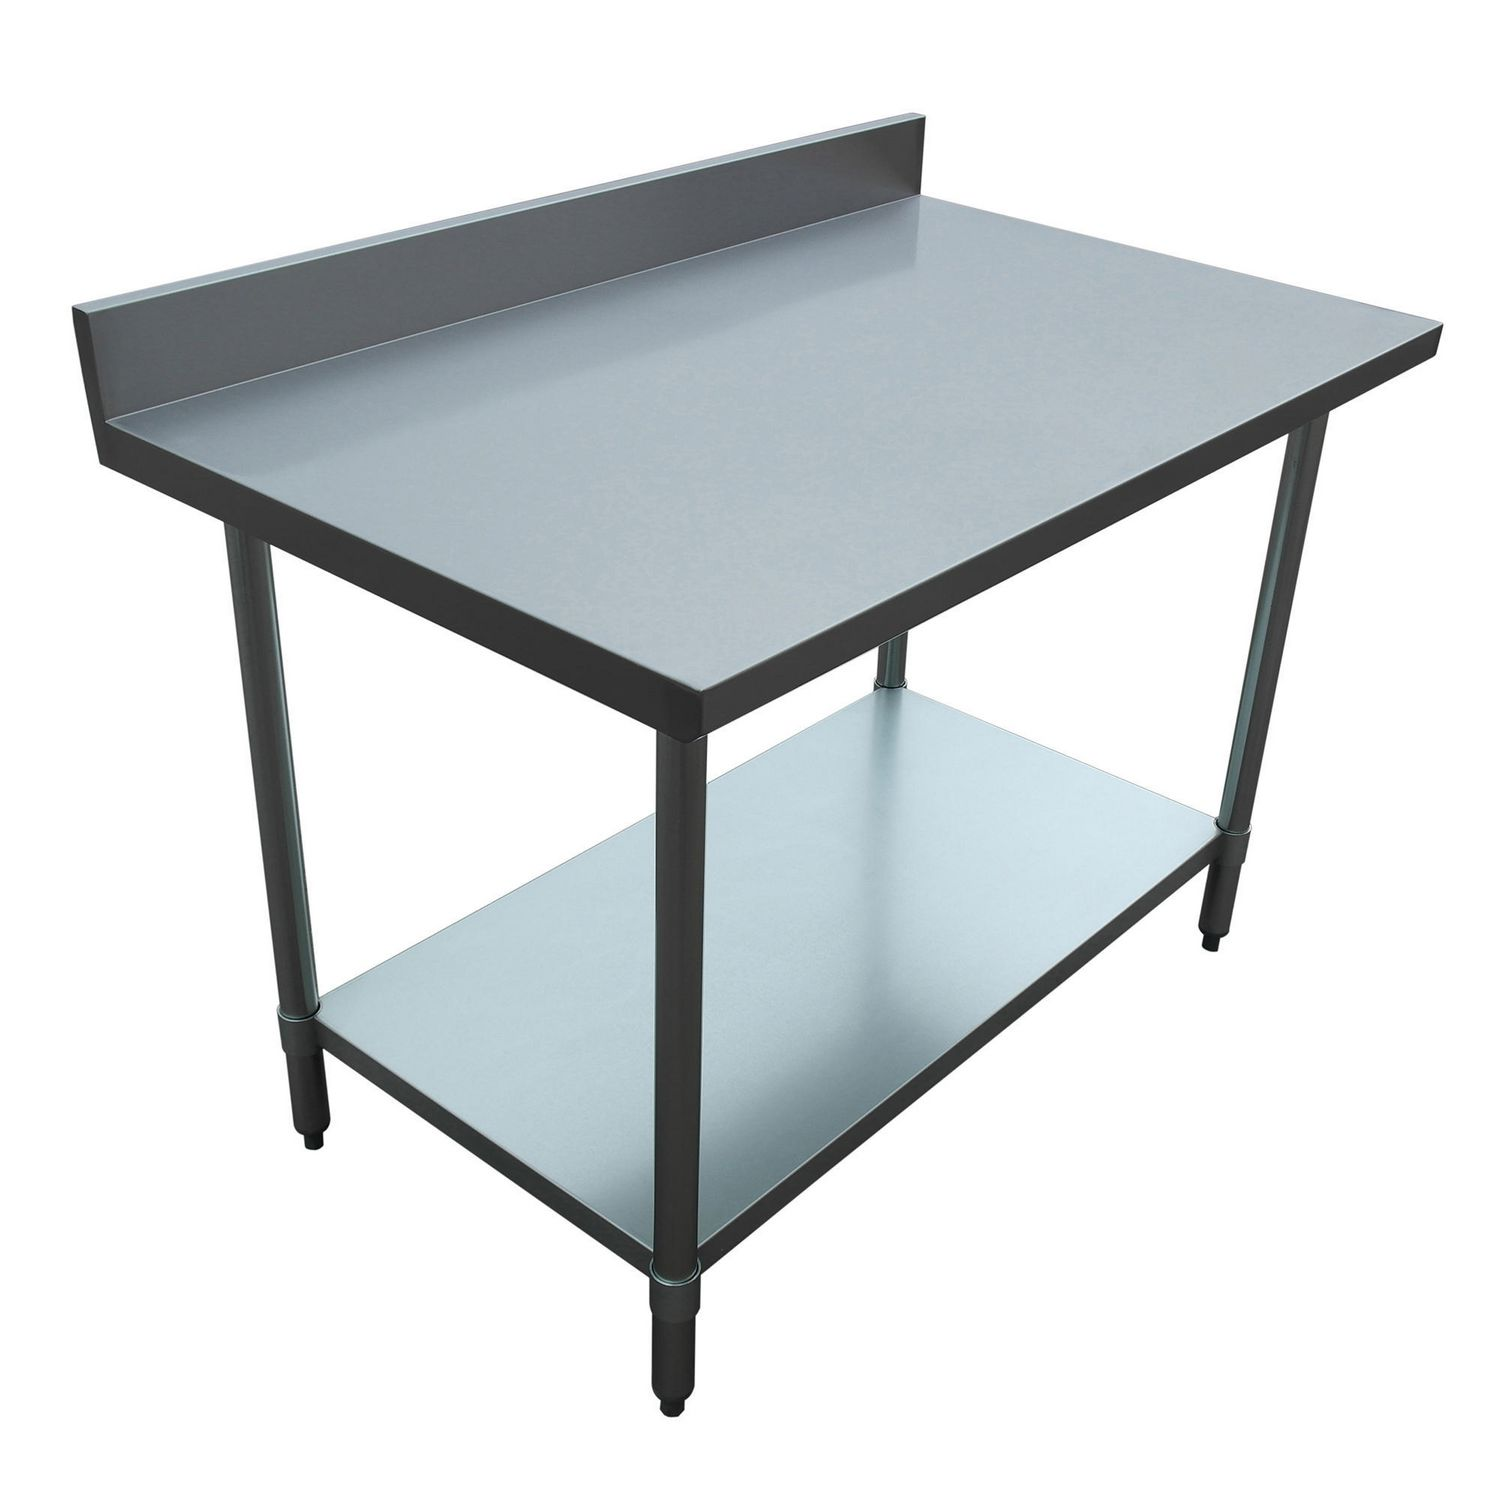 ip nsf available sizes steel table multiple prep gridmann kitchen com work commercial walmart tables stainless